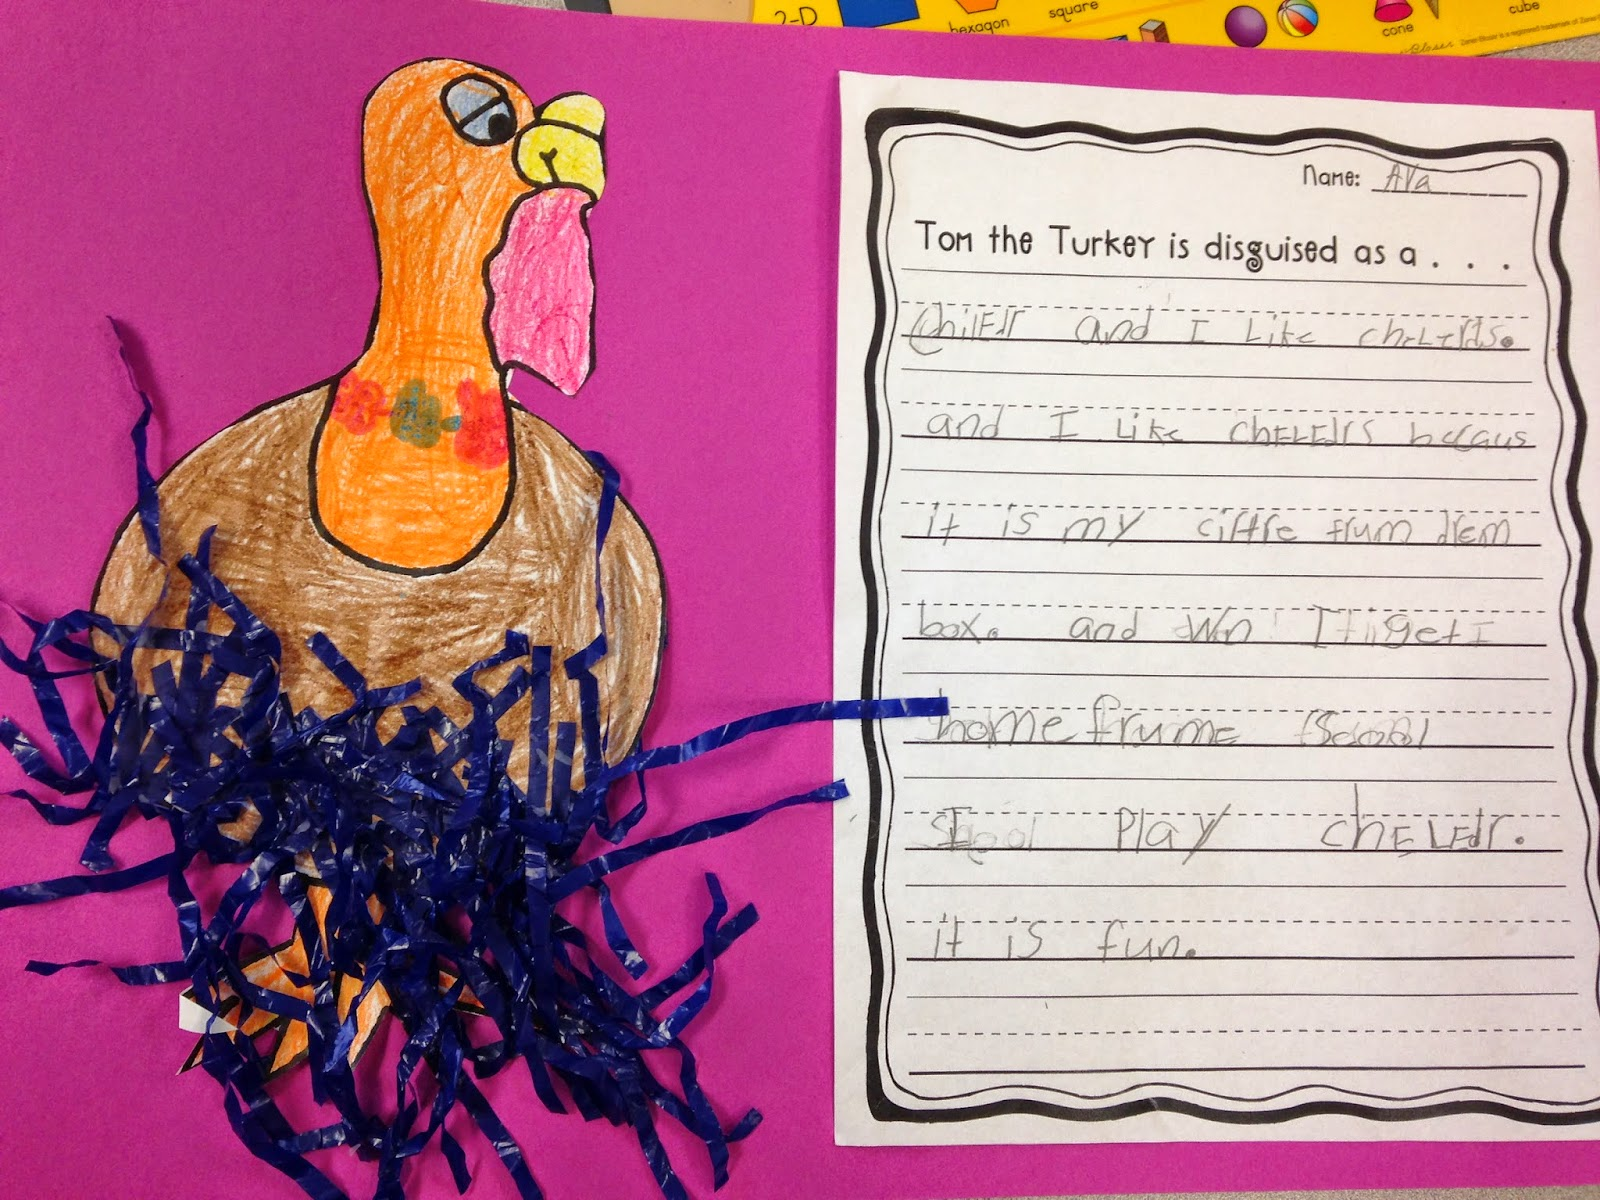 the first grade lunchbox disguise tom the turkey